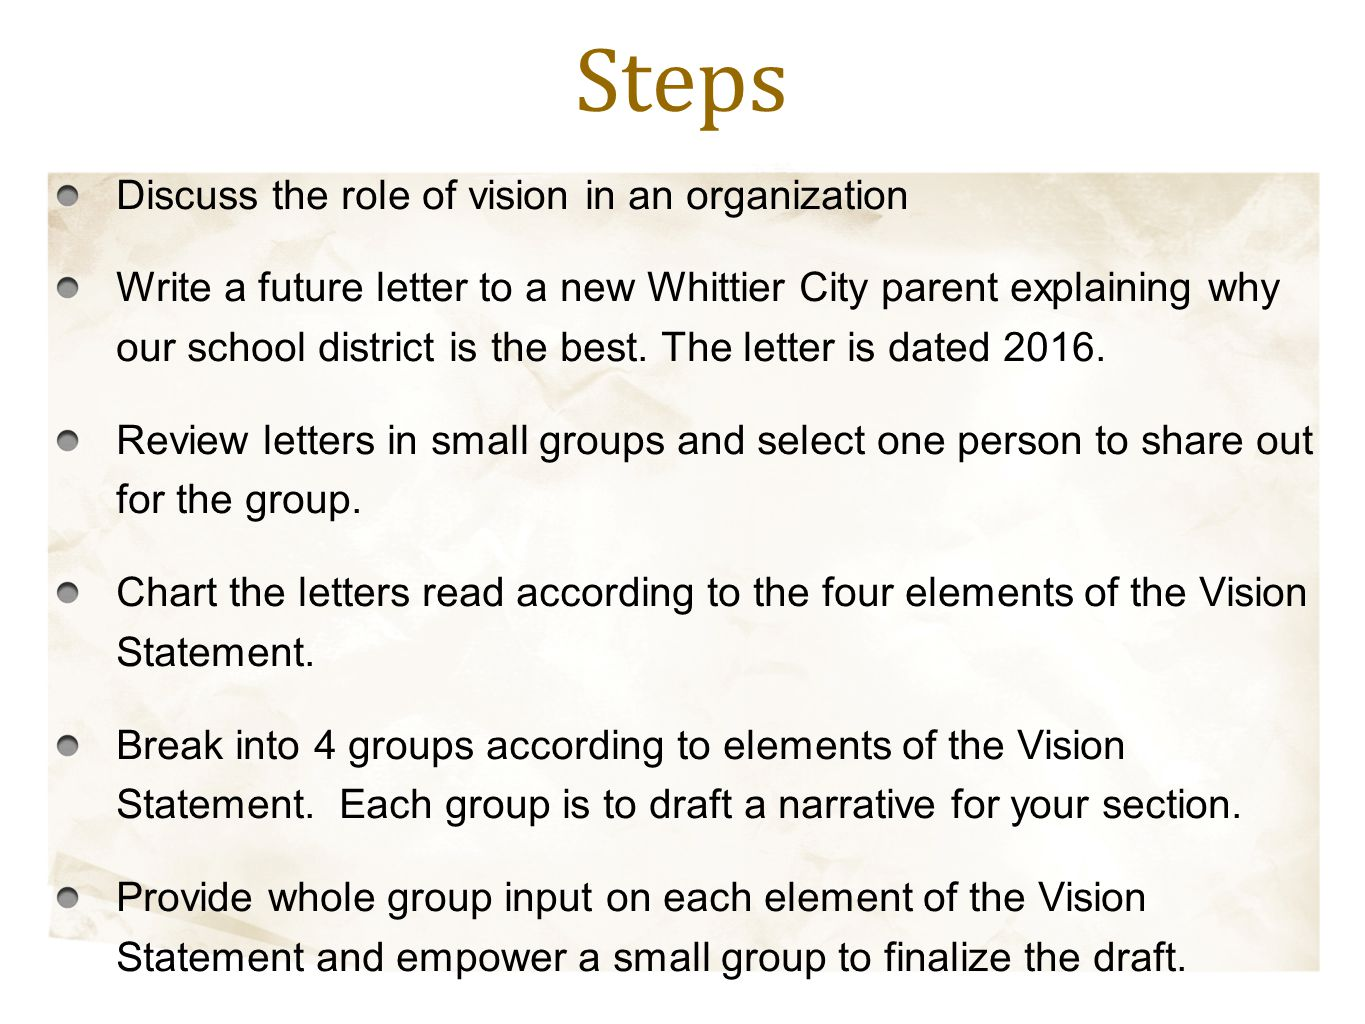 Discuss the role of vision in an organization Write a future letter to a new Whittier City parent explaining why our school district is the best. The